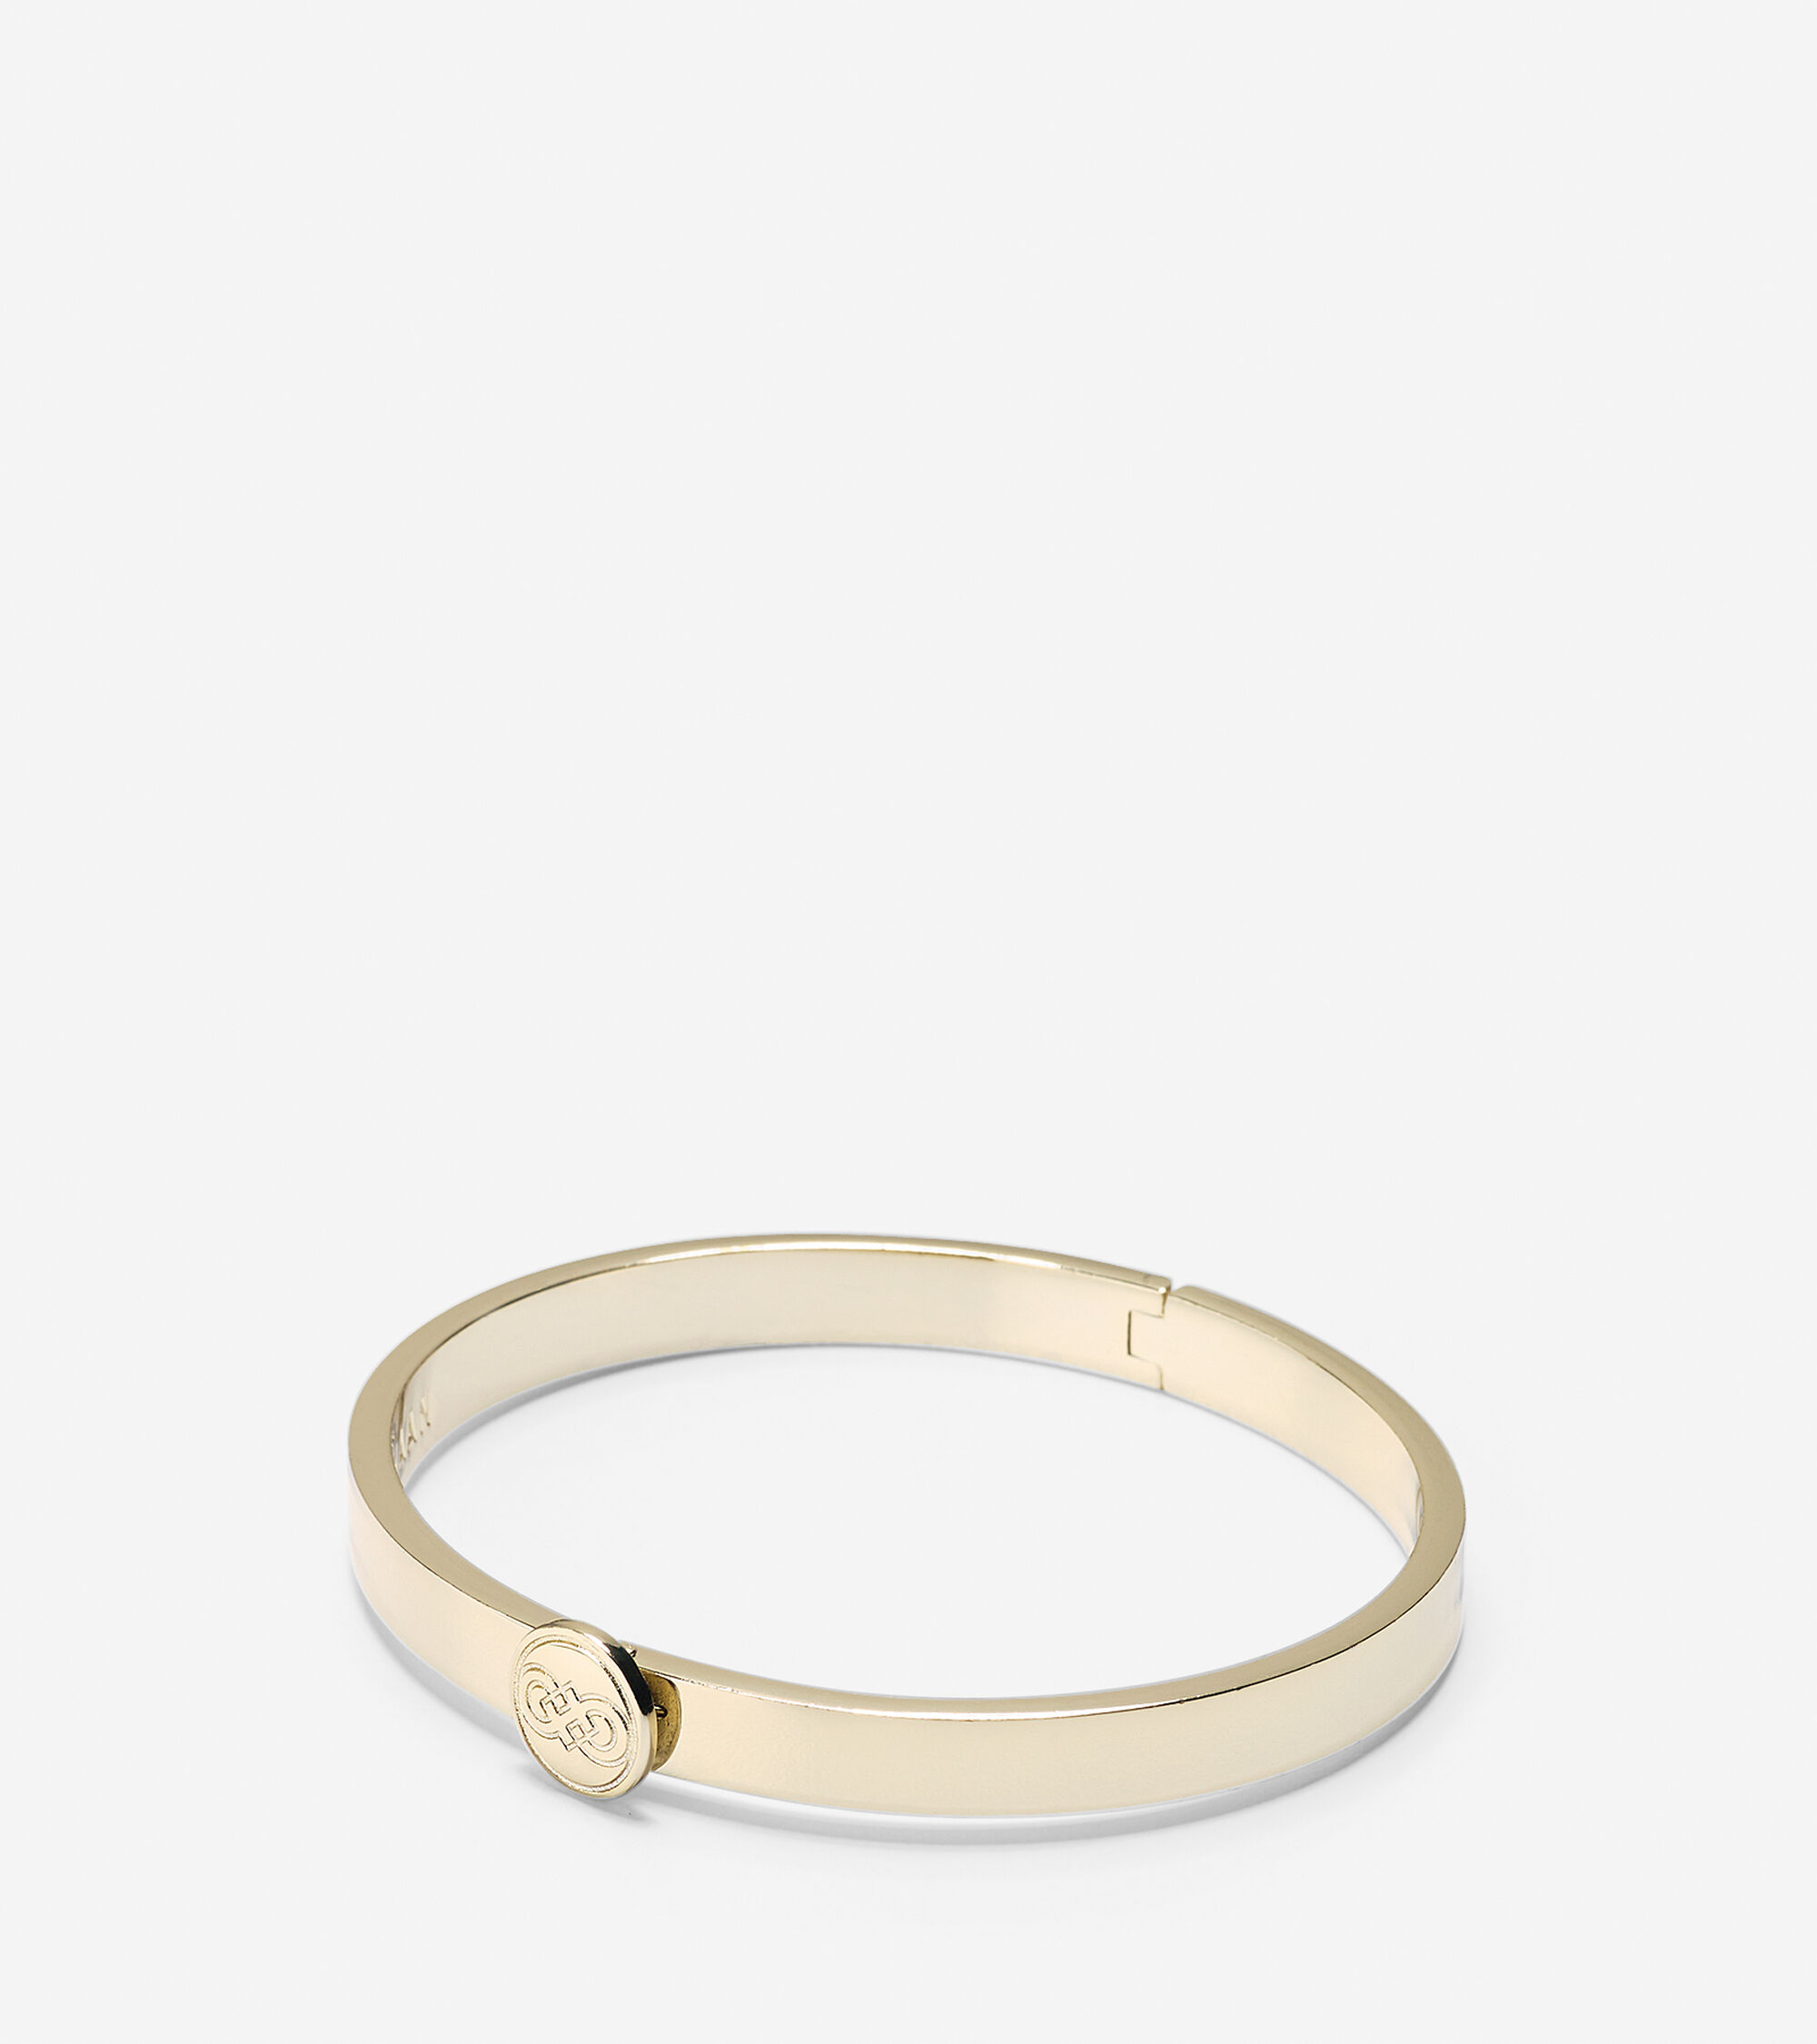 Accessories > Logo Hinge Bangle